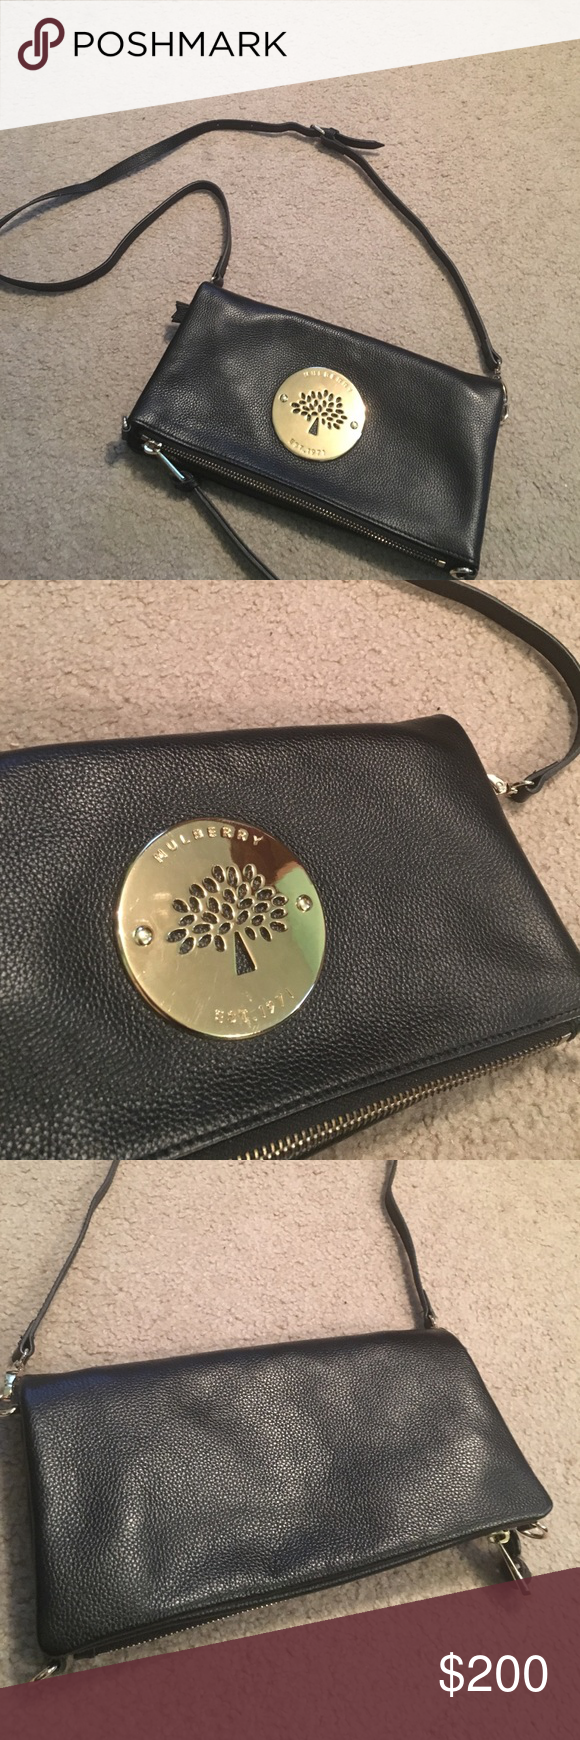 2a2526615f Mulberry Fold Over Crossbody Authentic! Exterior leather is in mint  condition! Only wear on exterior is minor scratches to gold emblem.